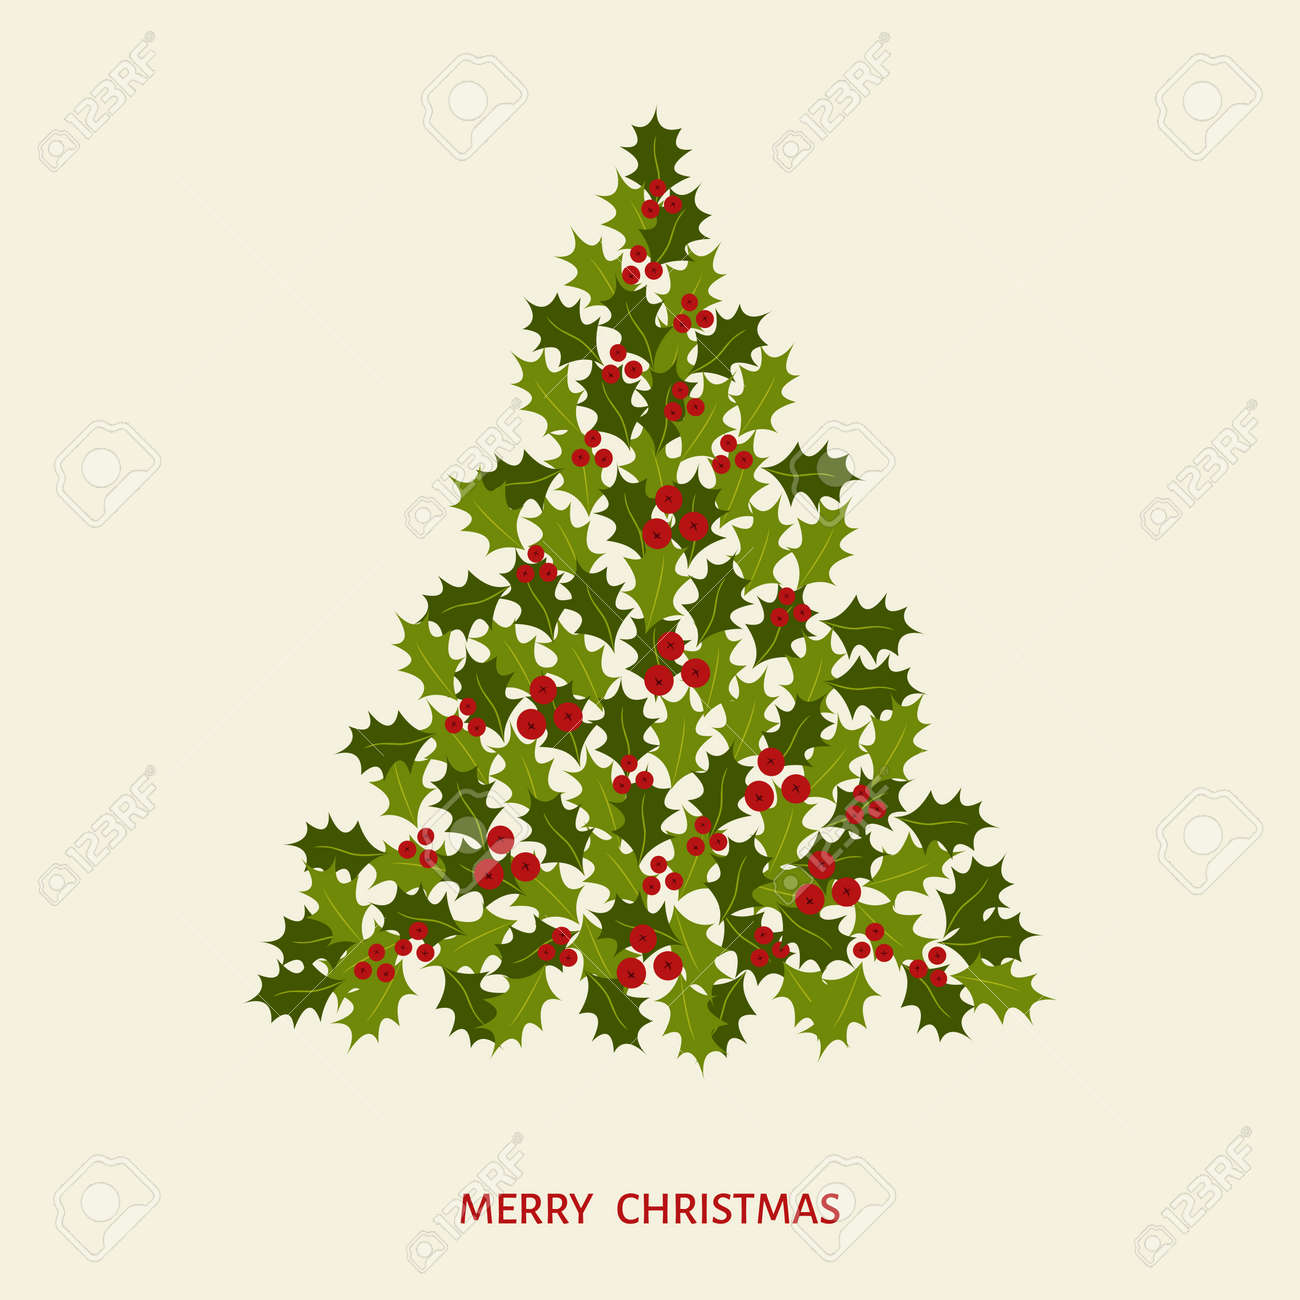 Abstract Christmas Tree With Leaves And Holly Berries Happy